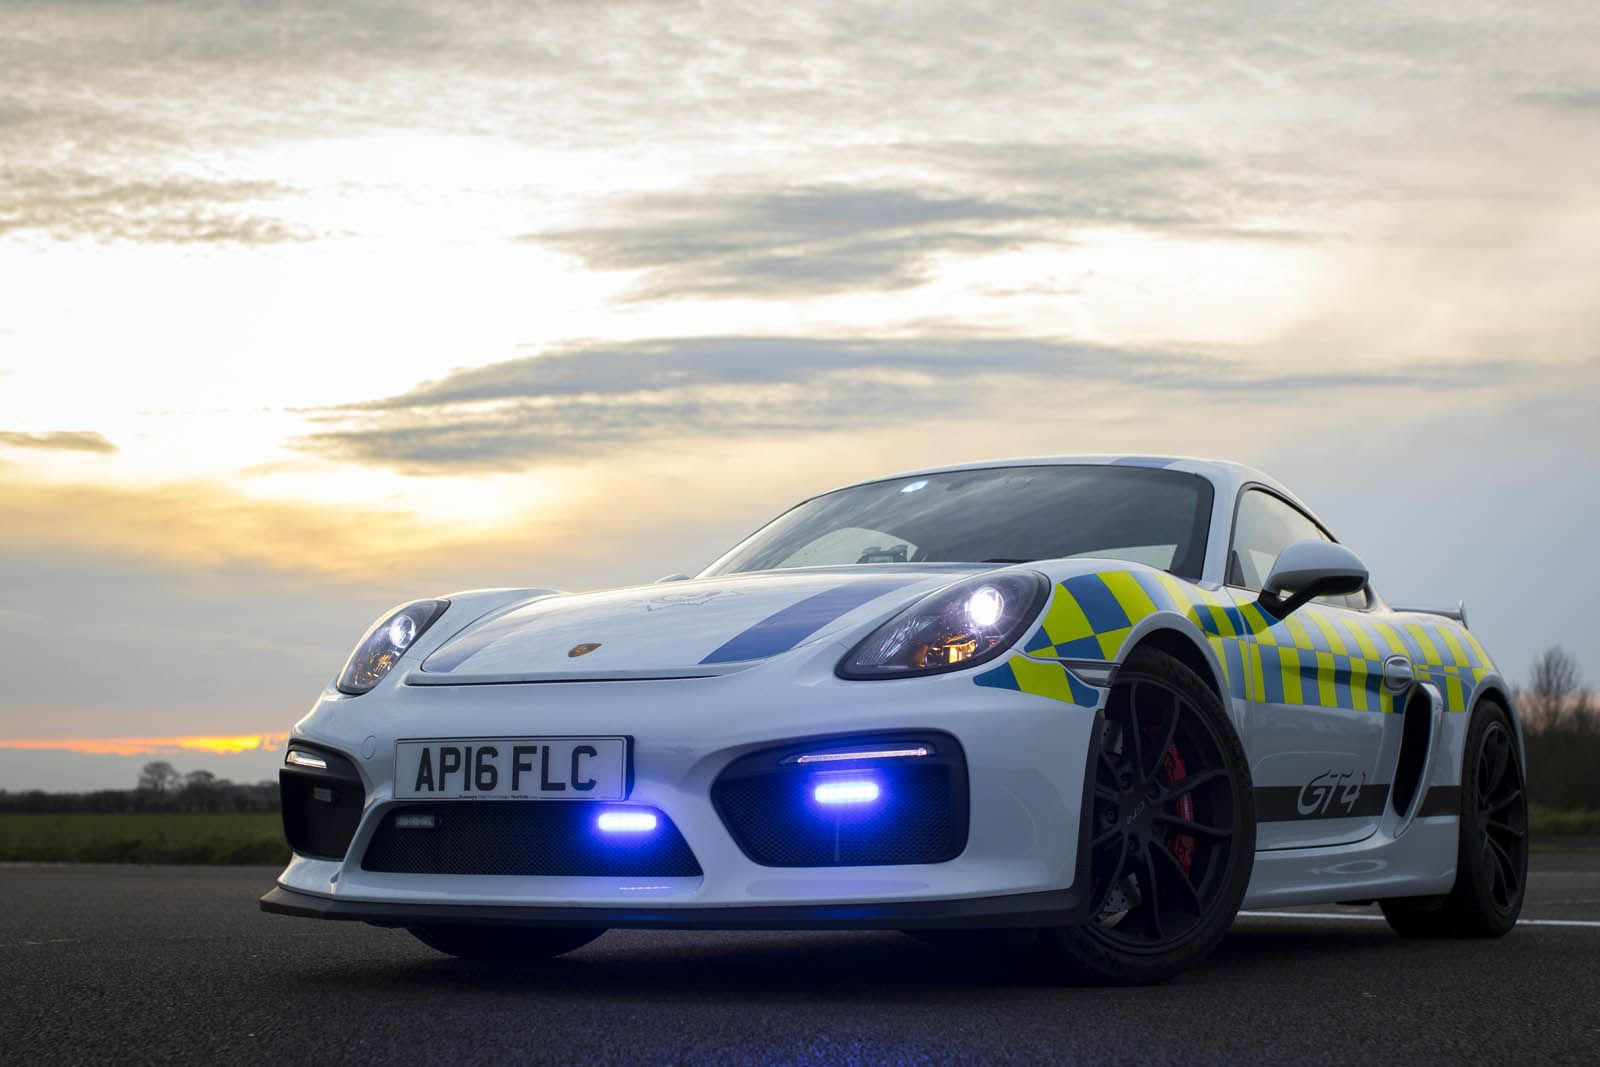 Porsche Cayman Gt4 For Uk Police We Definitely Like Us Police S Cruisers On Their Highways But Let S Agree Some Of The Police C Cayman Gt4 Police Cars Porsche